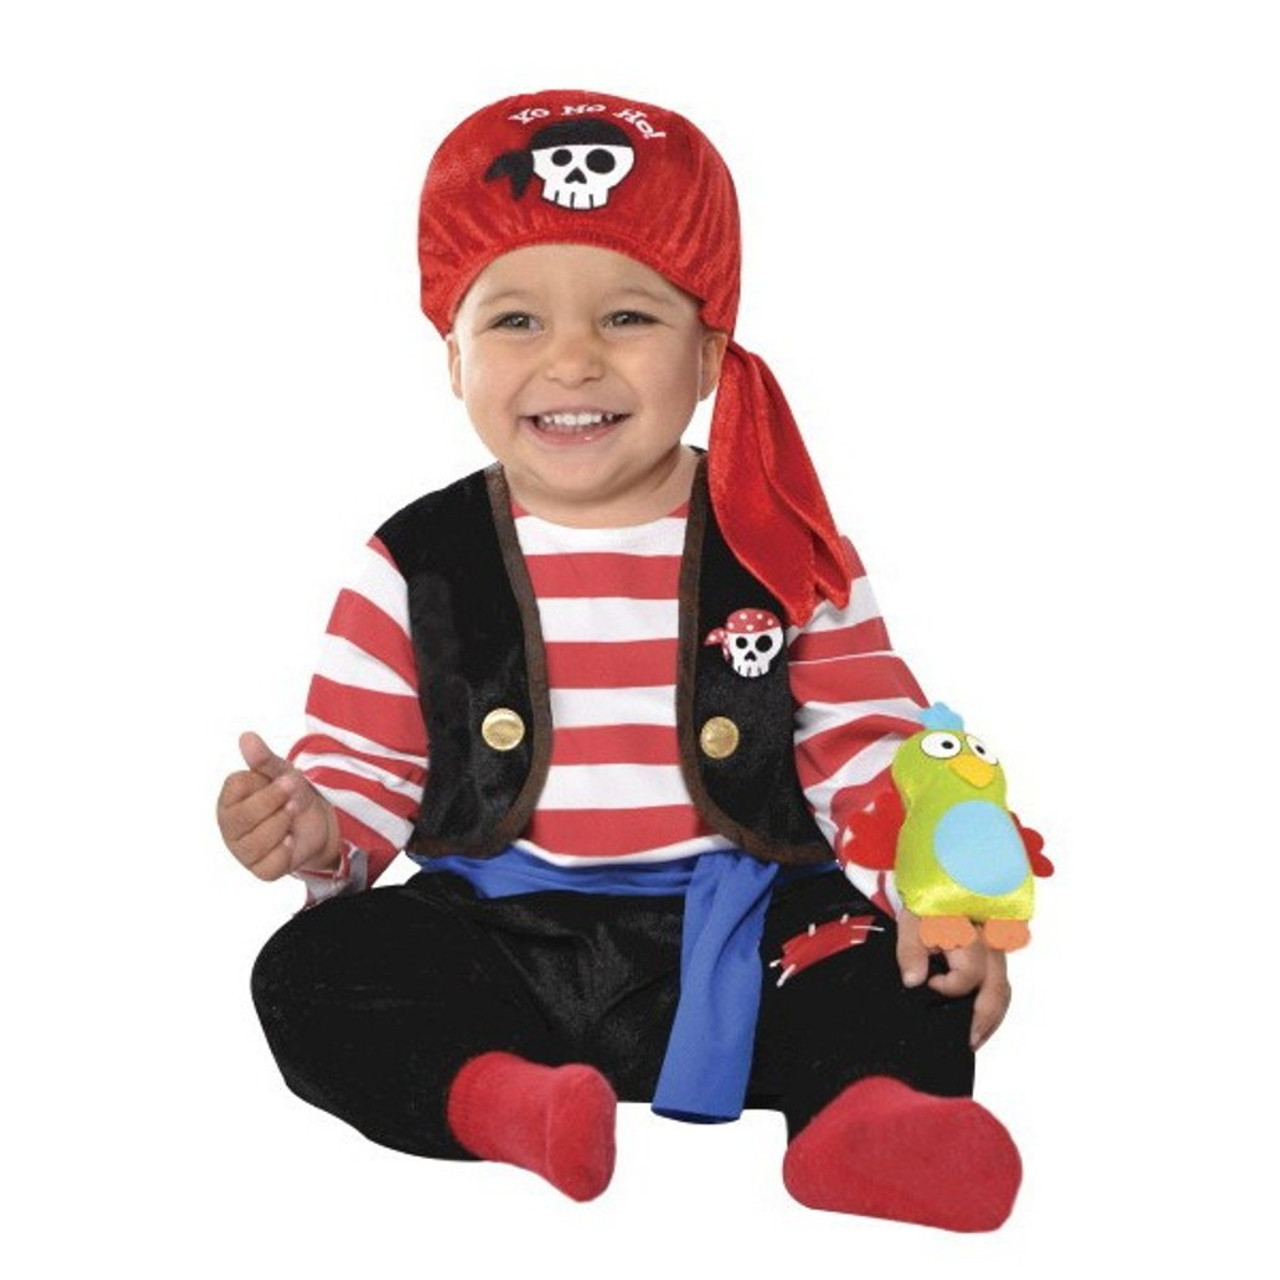 sc 1 st  Mardi Gras Party Sales & Baby Buccaneer With Parrot Infant Boys 6-12 Months Pirate Costume